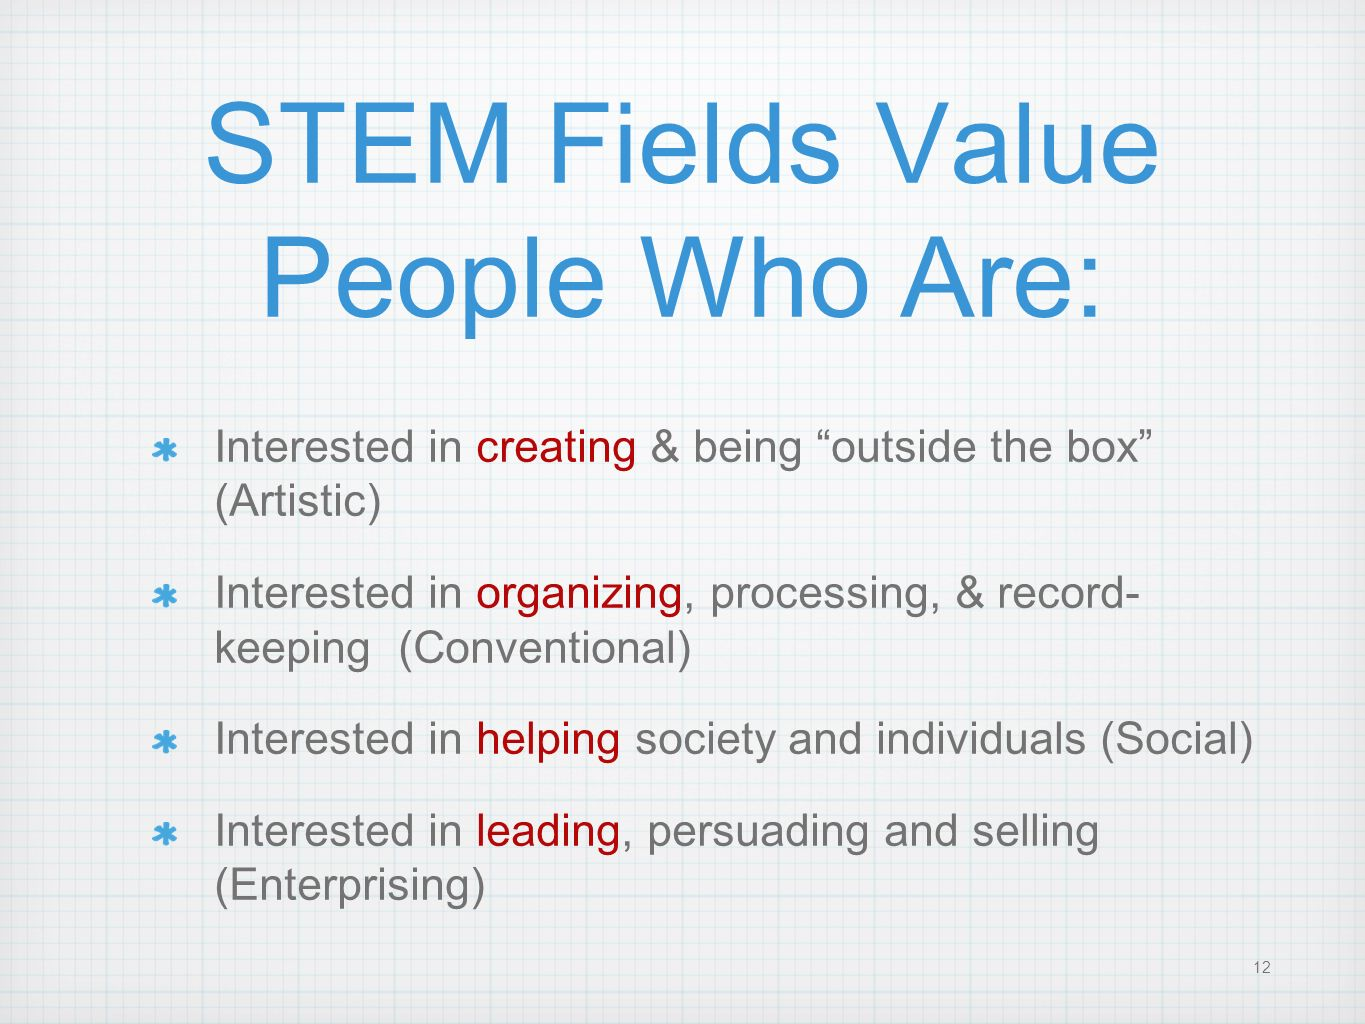 STEM Fields Value People Who Are: